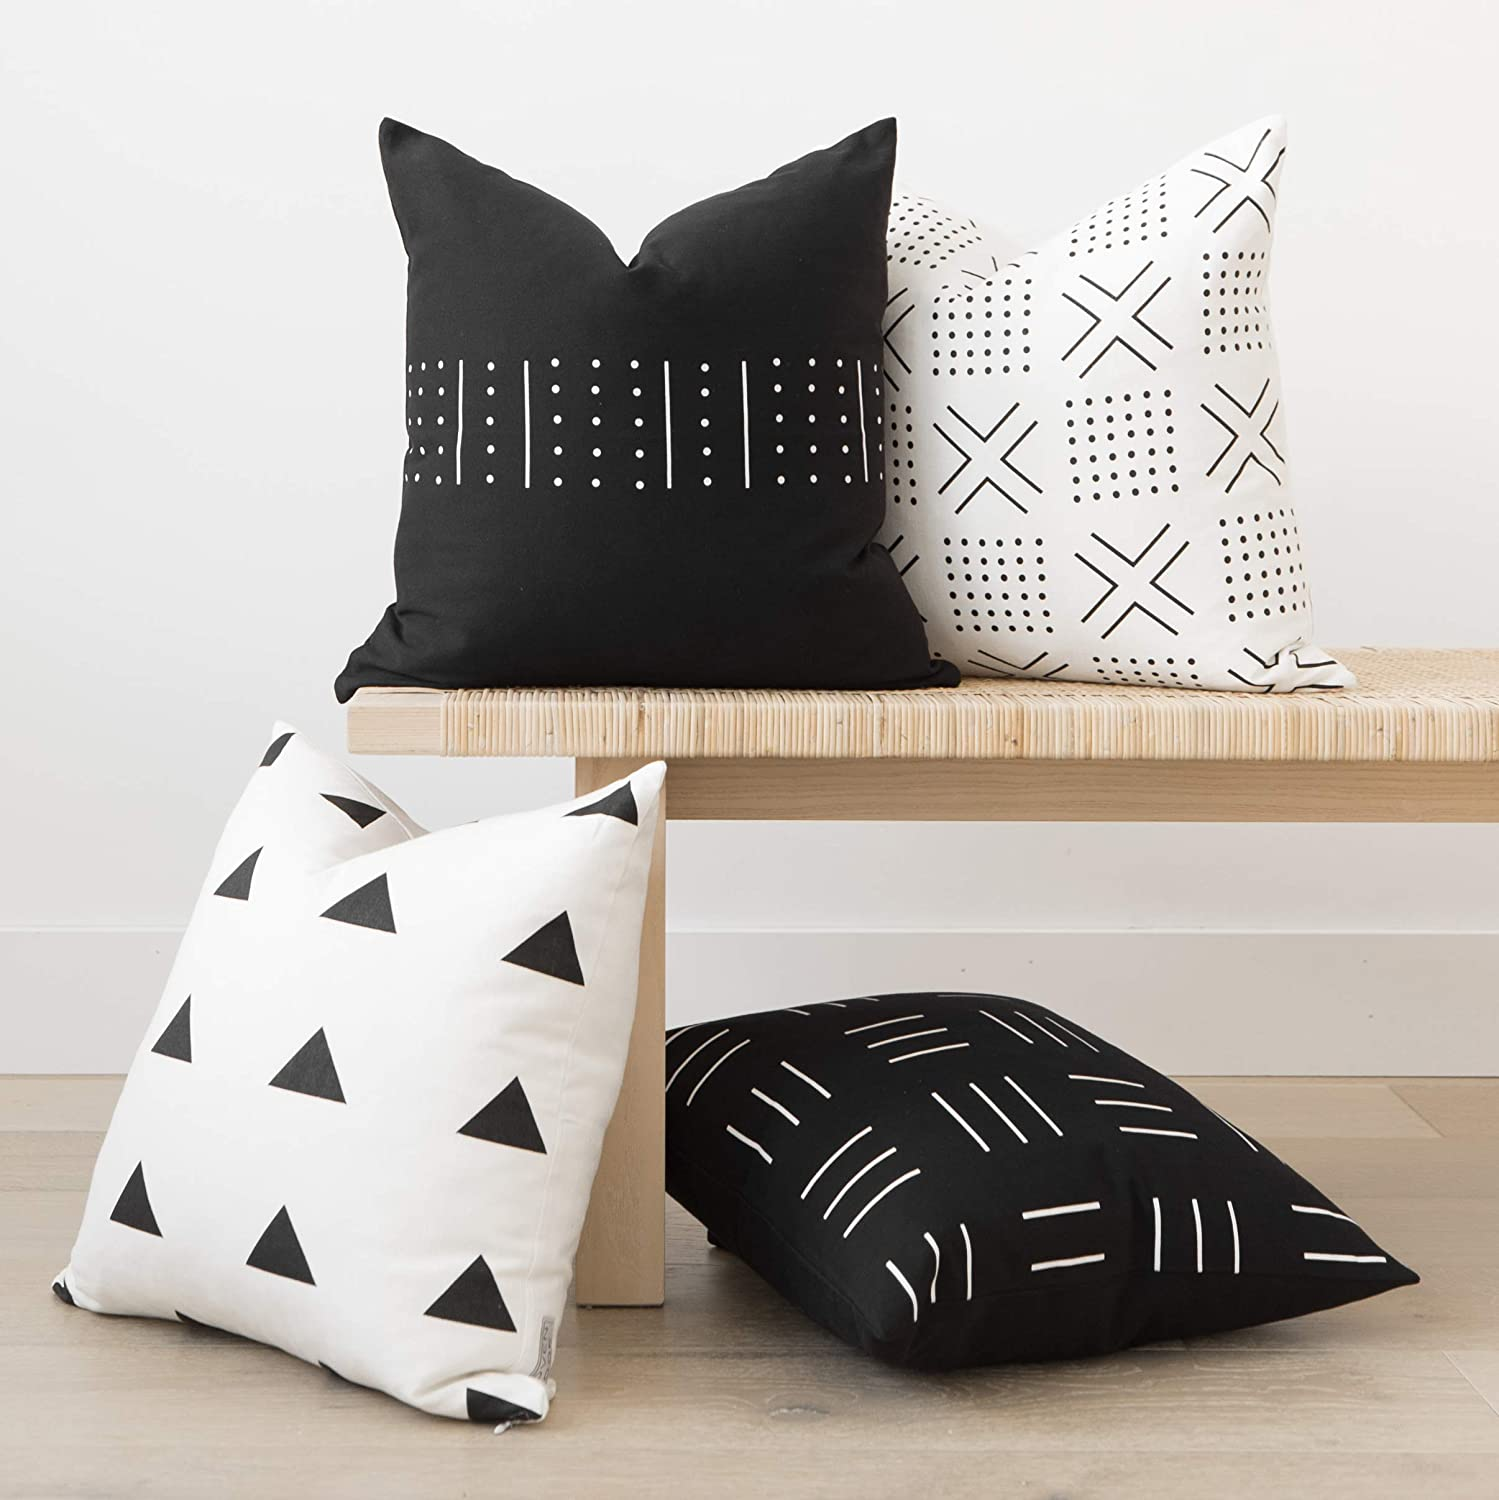 18x18 Inches 100/% Cotton Canvas Zola Set Woven Nook Decorative Throw Pillow Covers Pack of 4